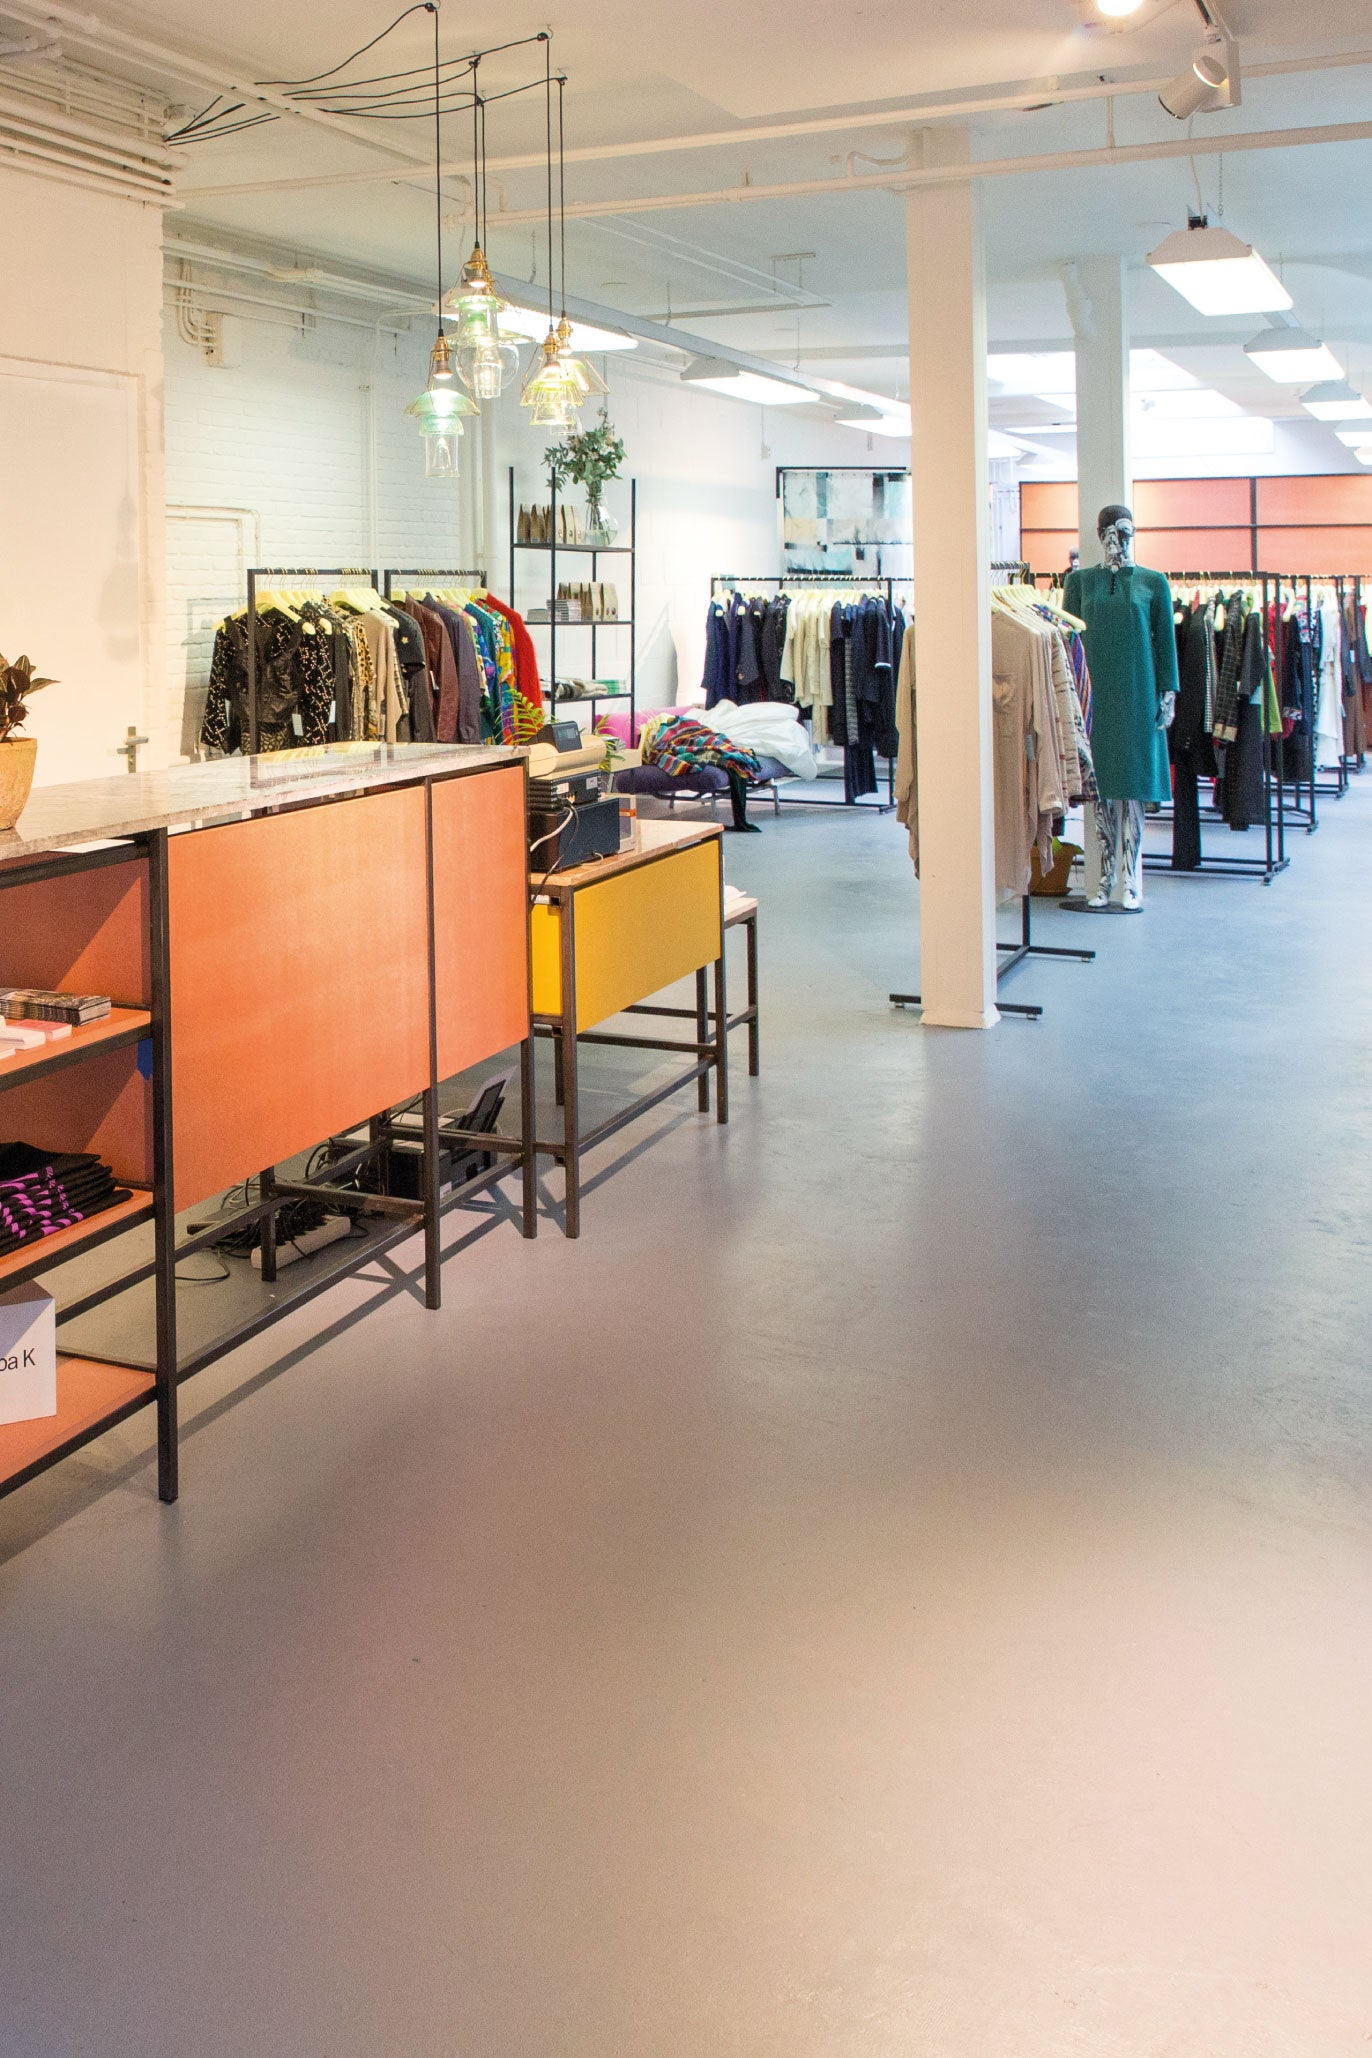 Lena Library store on westerstraat in Amsterdam